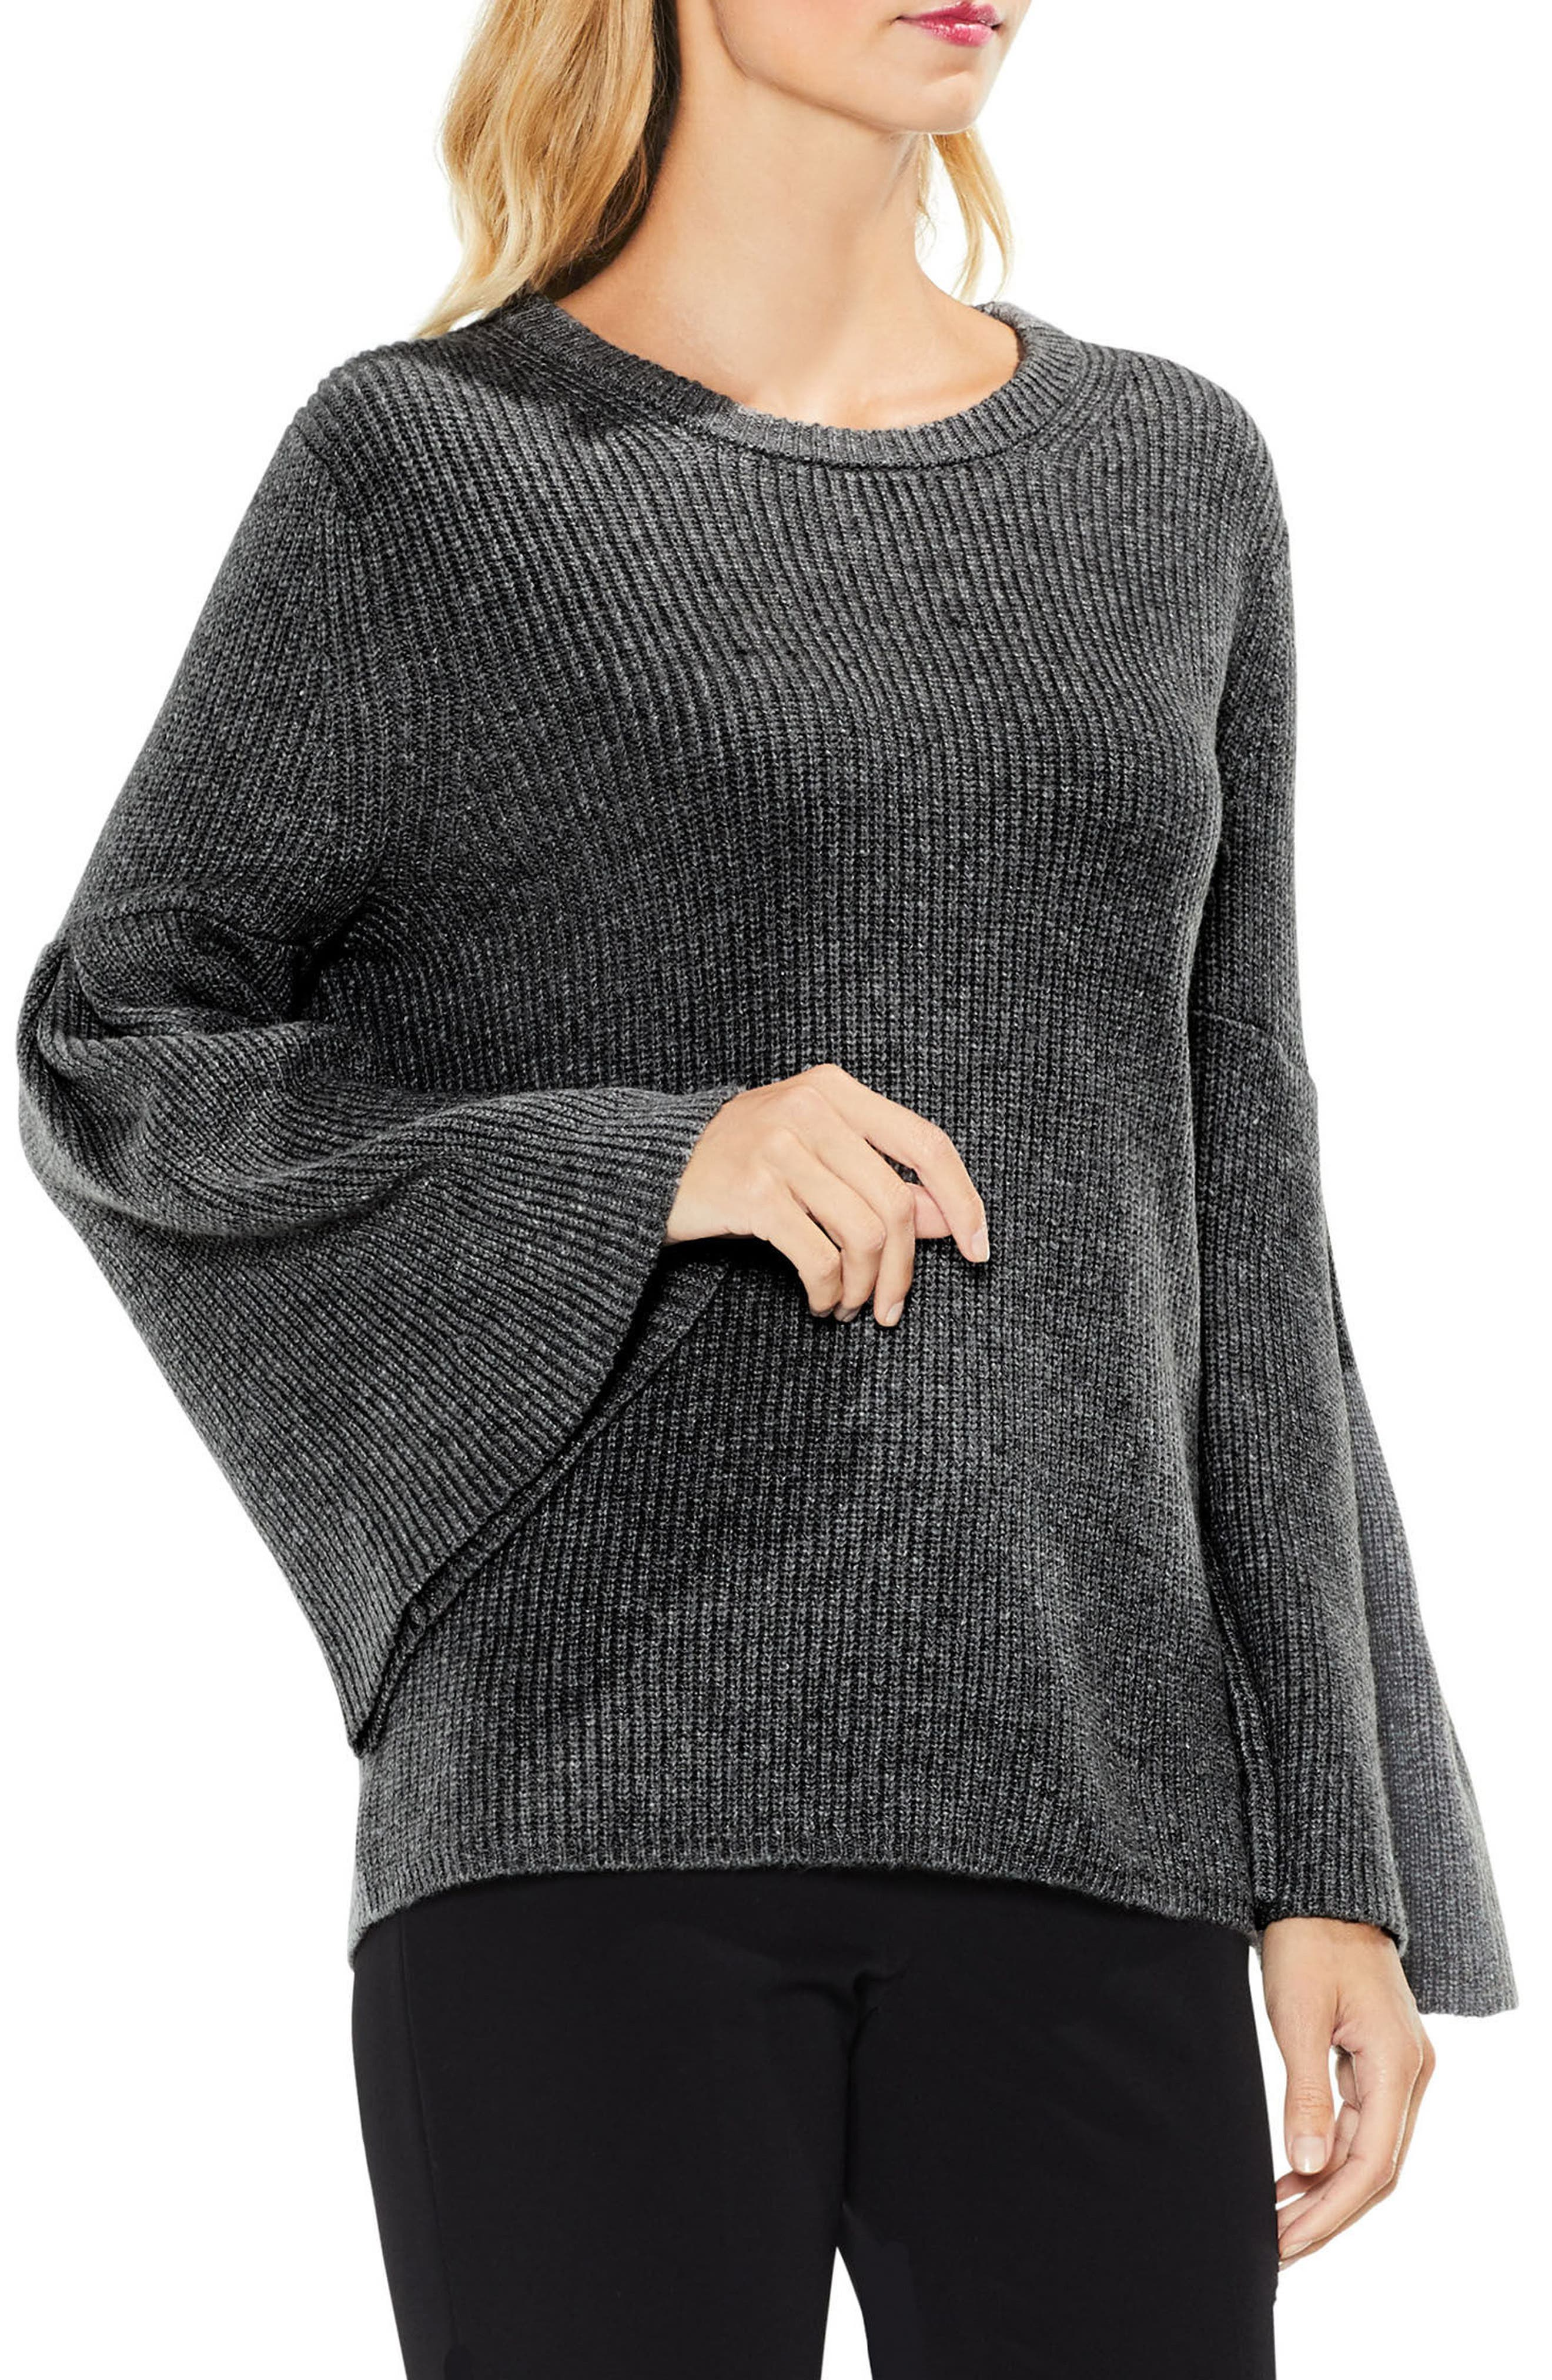 Main Image - Vince Camuto All Over Rib Bell Sleeve Sweater (Regular & Petite)